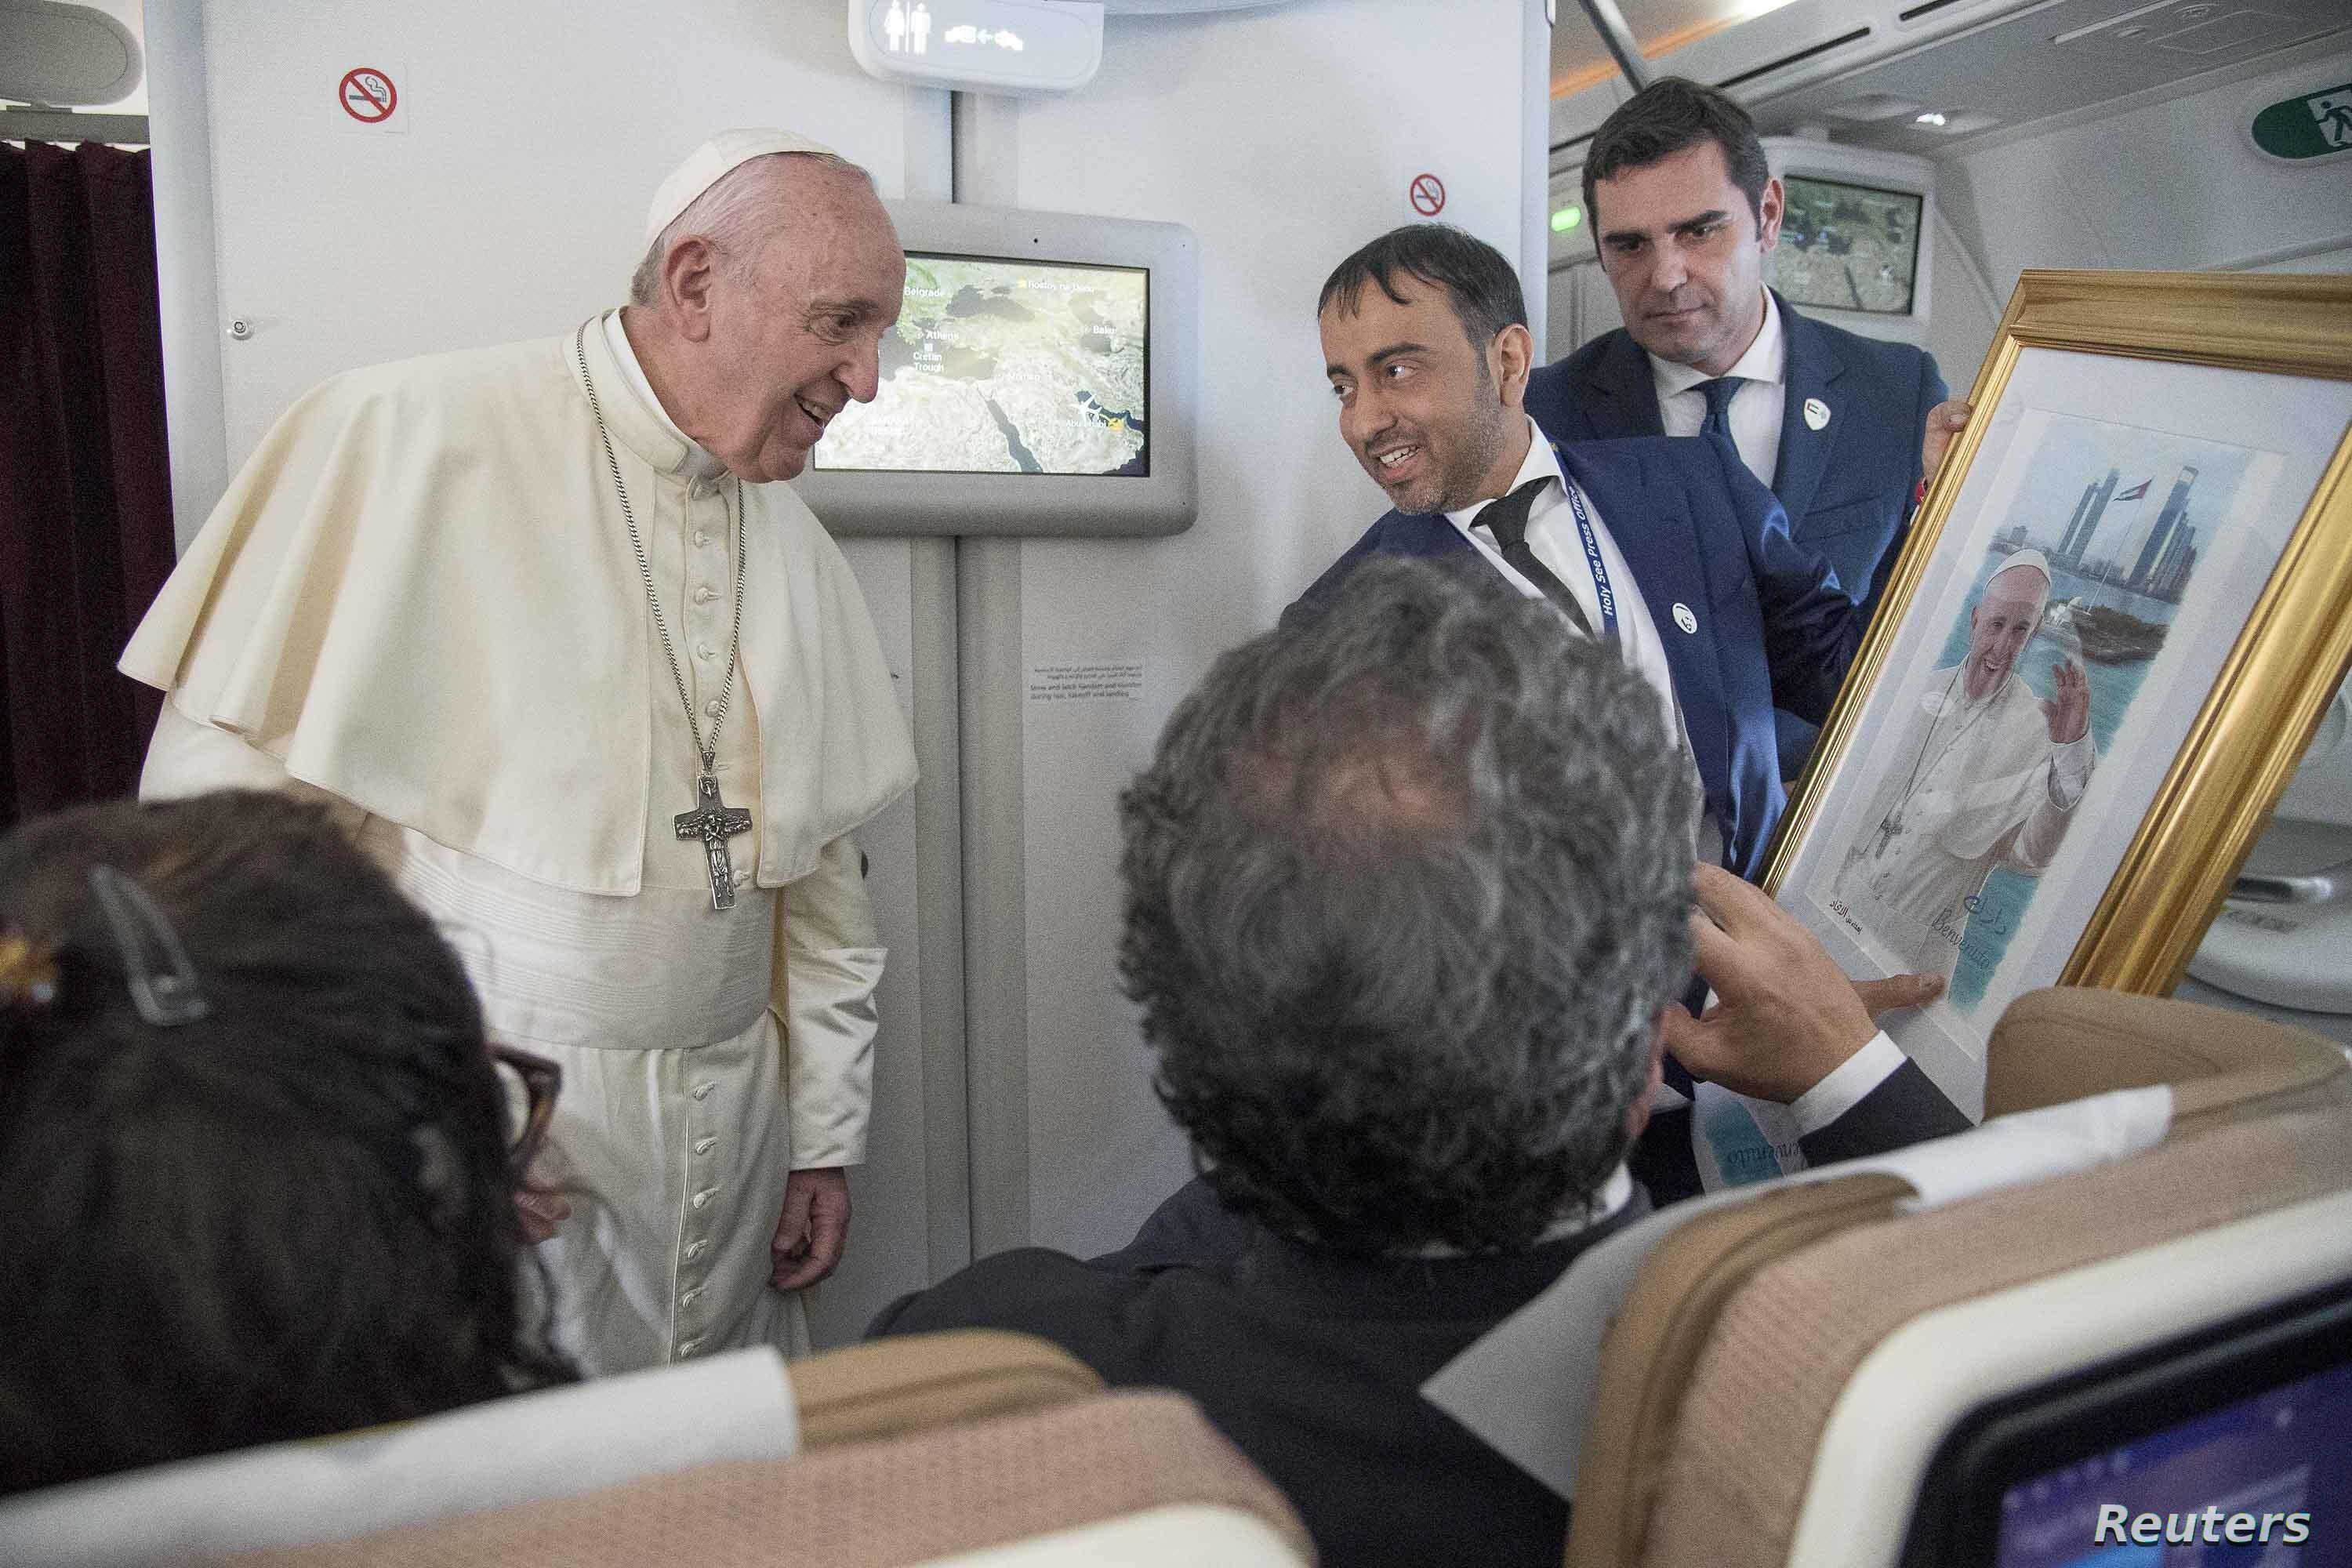 Pope Francis receives a gift from a journalist during a questions session after his visit to Abu Dhabi, United Arab Emirates, Feb. 5, 2019.